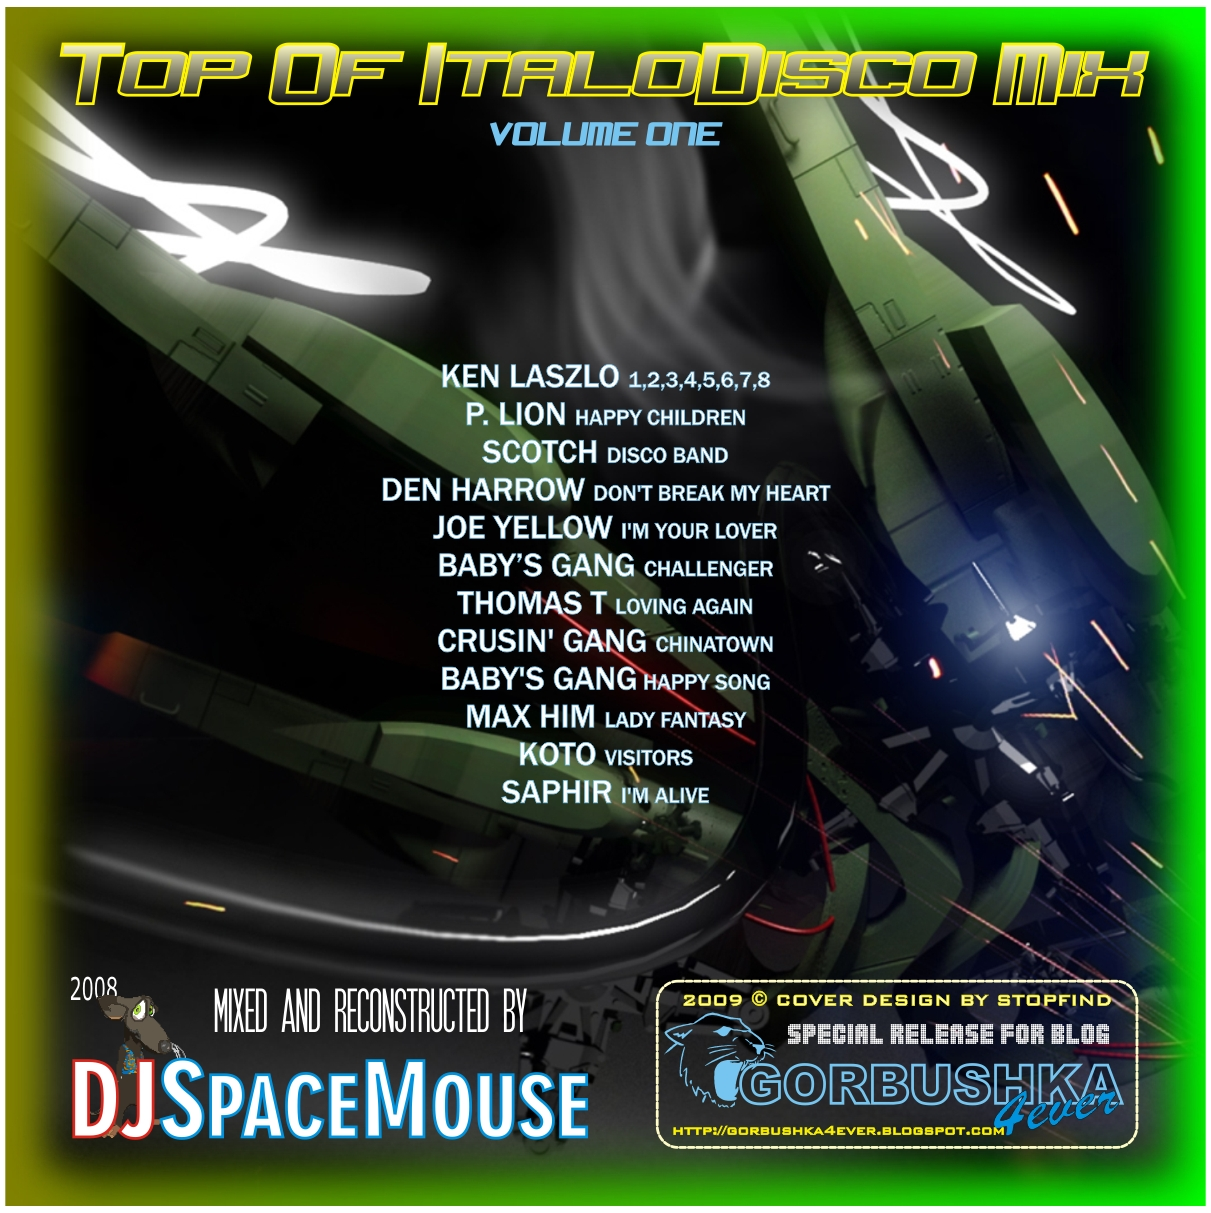 DJ_SPACEMOUSE_Top_Of_Italo_Disco_Mix_01.jpg